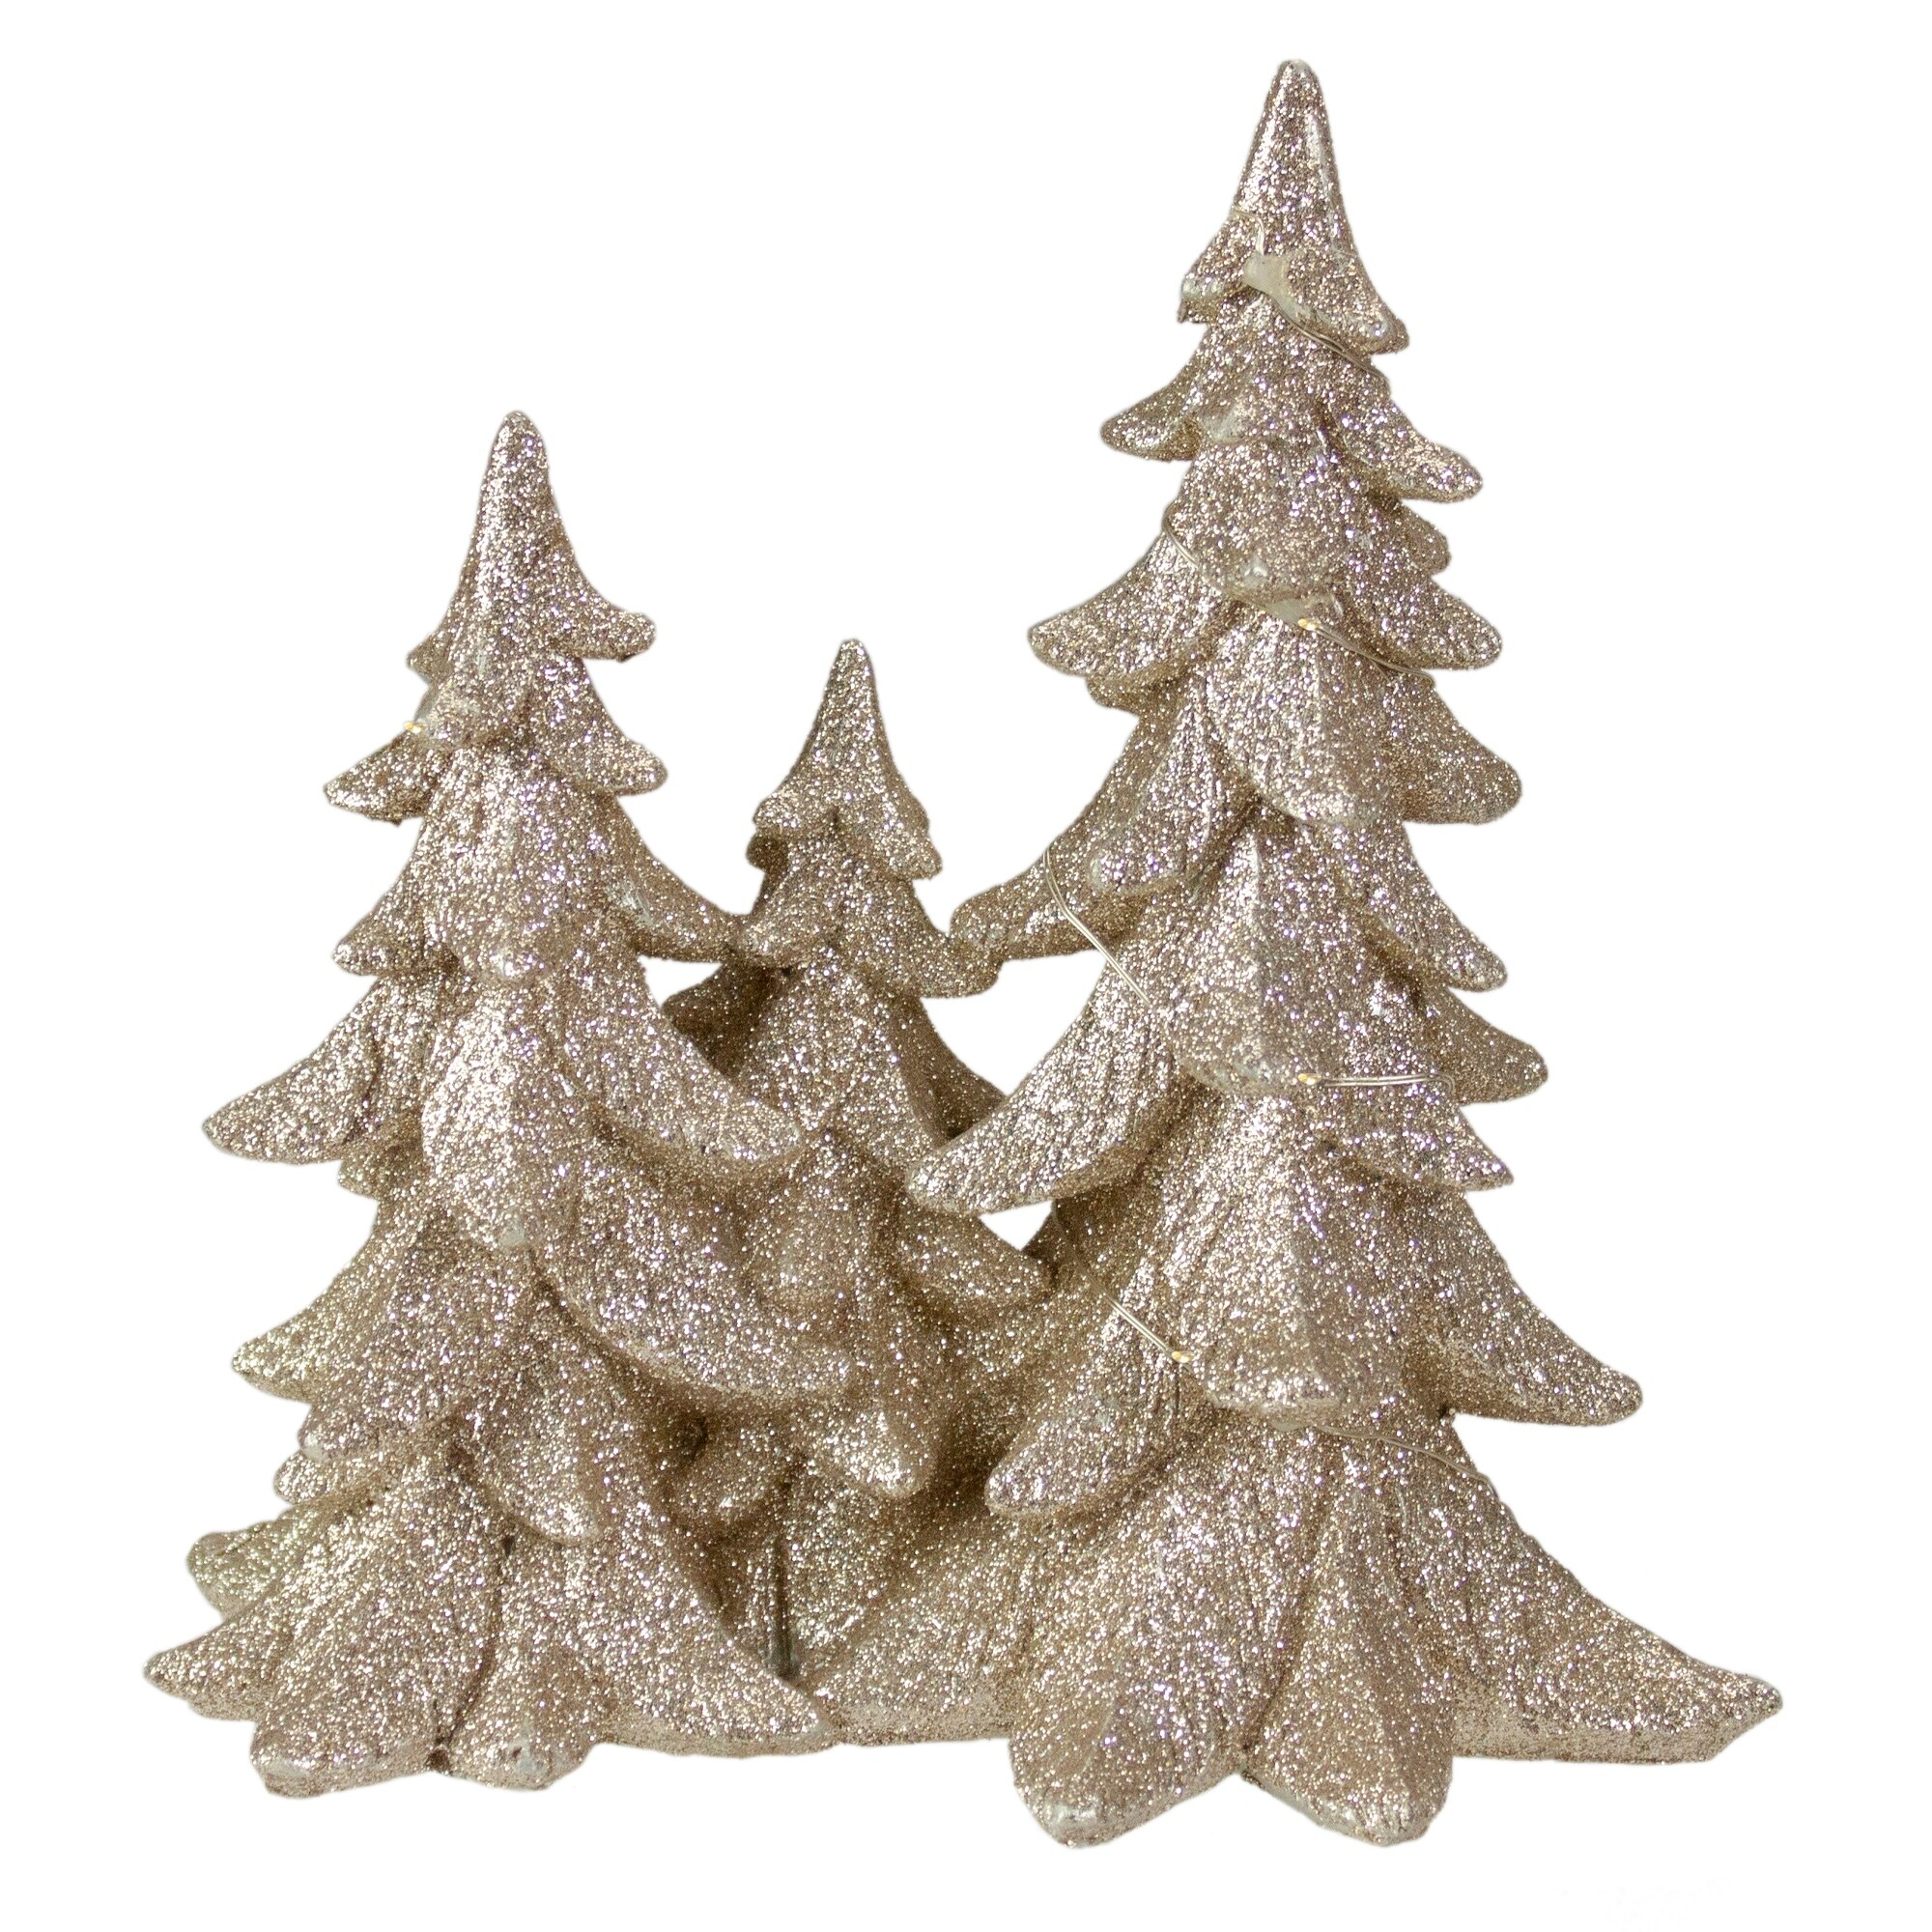 8 Champagne Gold Glittered Christmas Tree Trio Tabletop Decoration Overstock 32255037